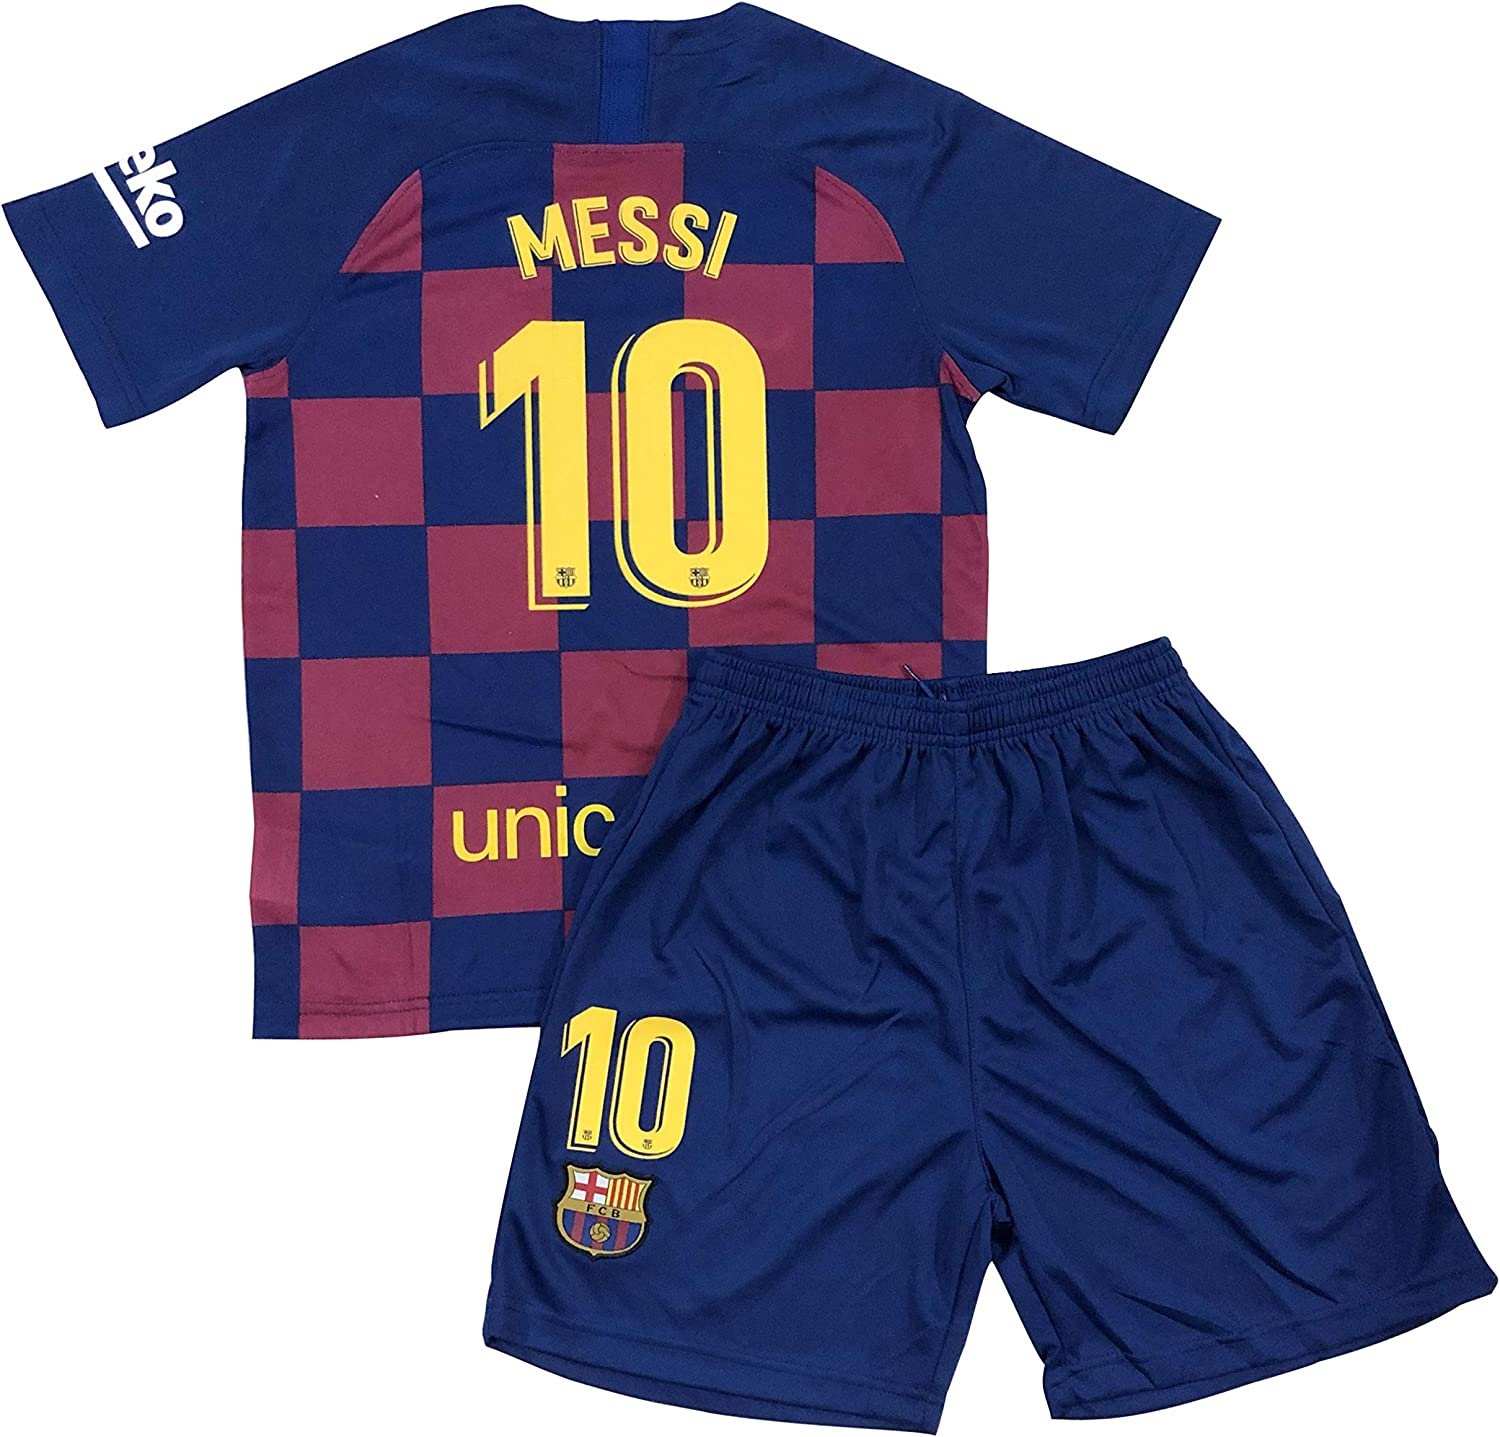 Bayli New 2020 Youths Messi 10 Home Jersey & Shorts